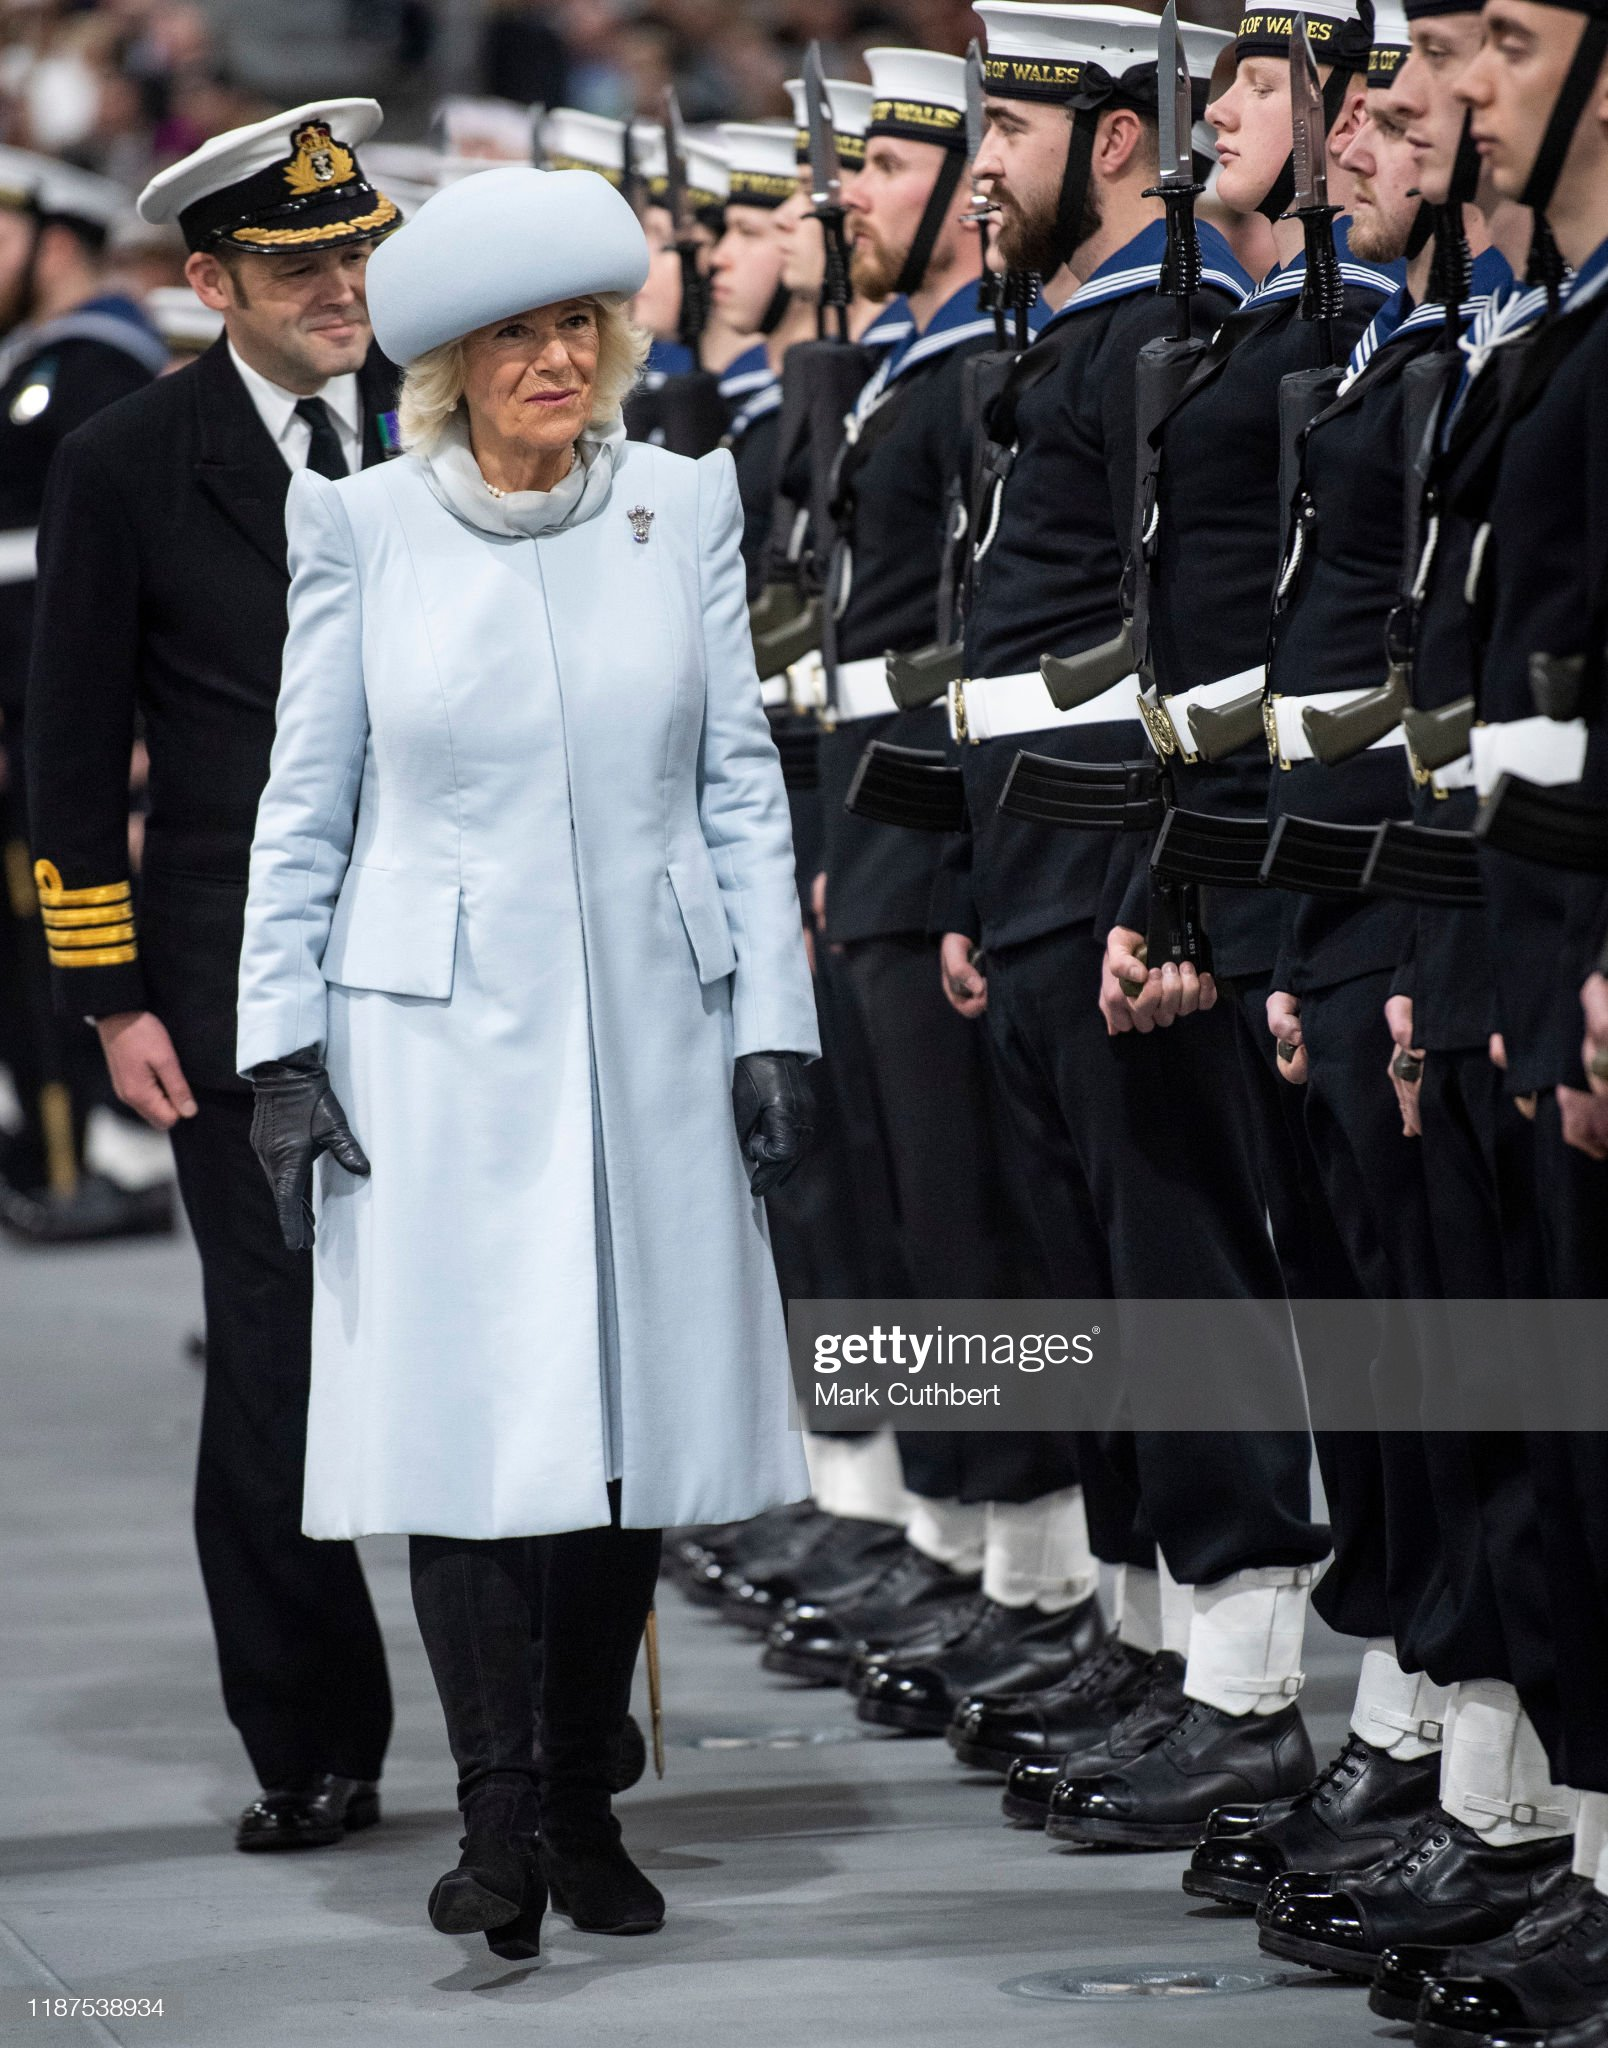 camilla-duchess-of-cornwall-attends-the-official-commissioning-of-picture-id1187538934